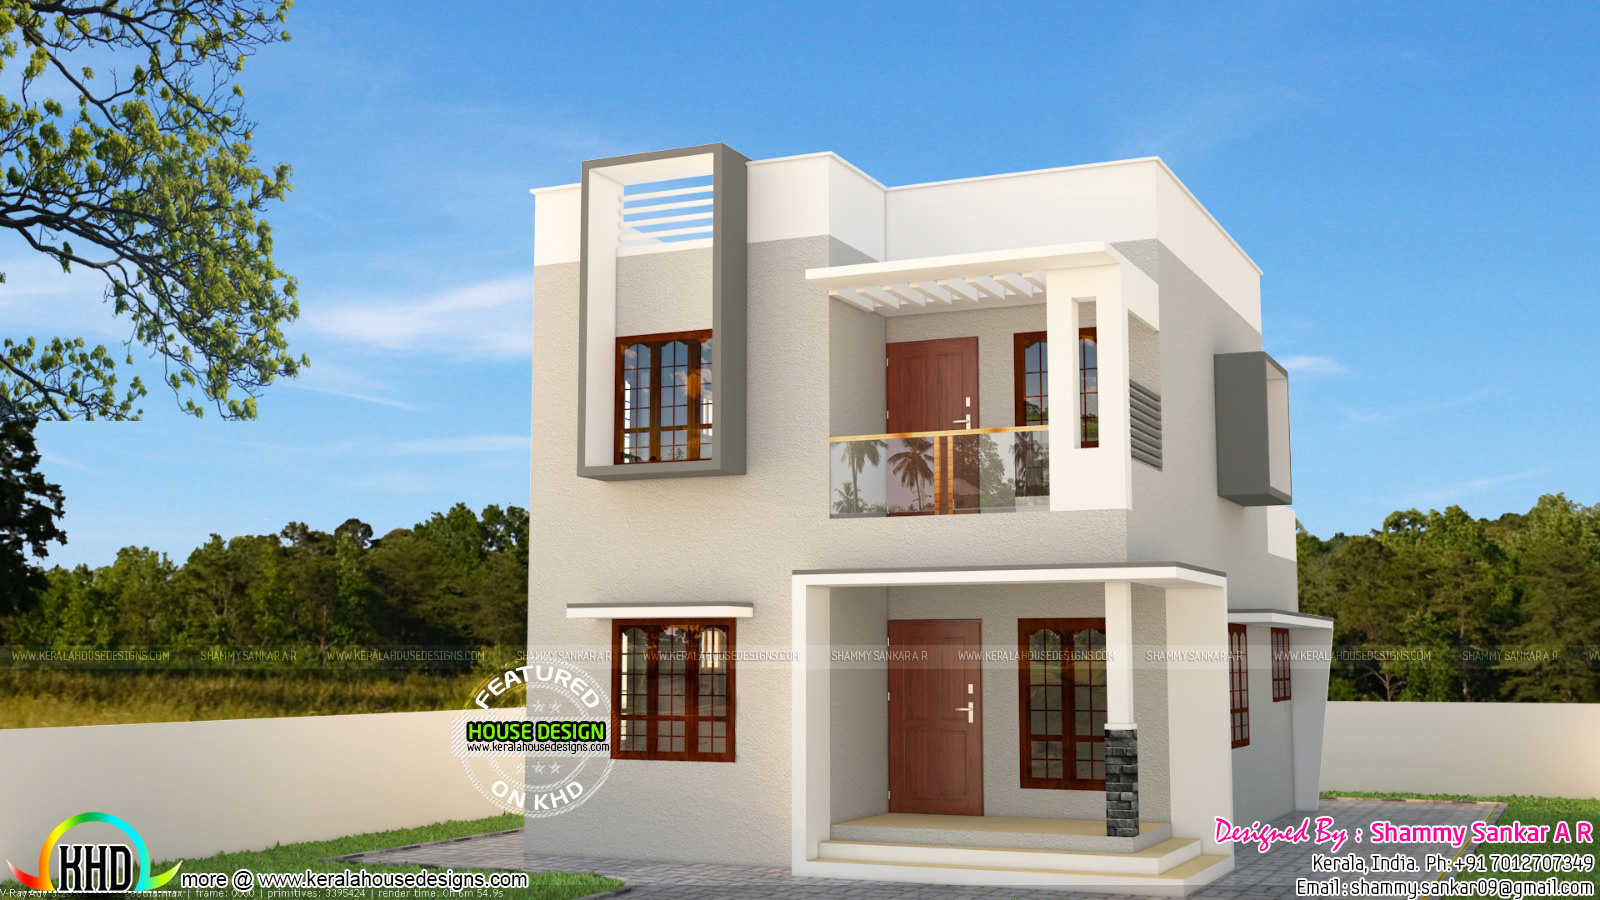 Simple Contemporary Style 1314 Sq Ft Home Kerala Home Design And